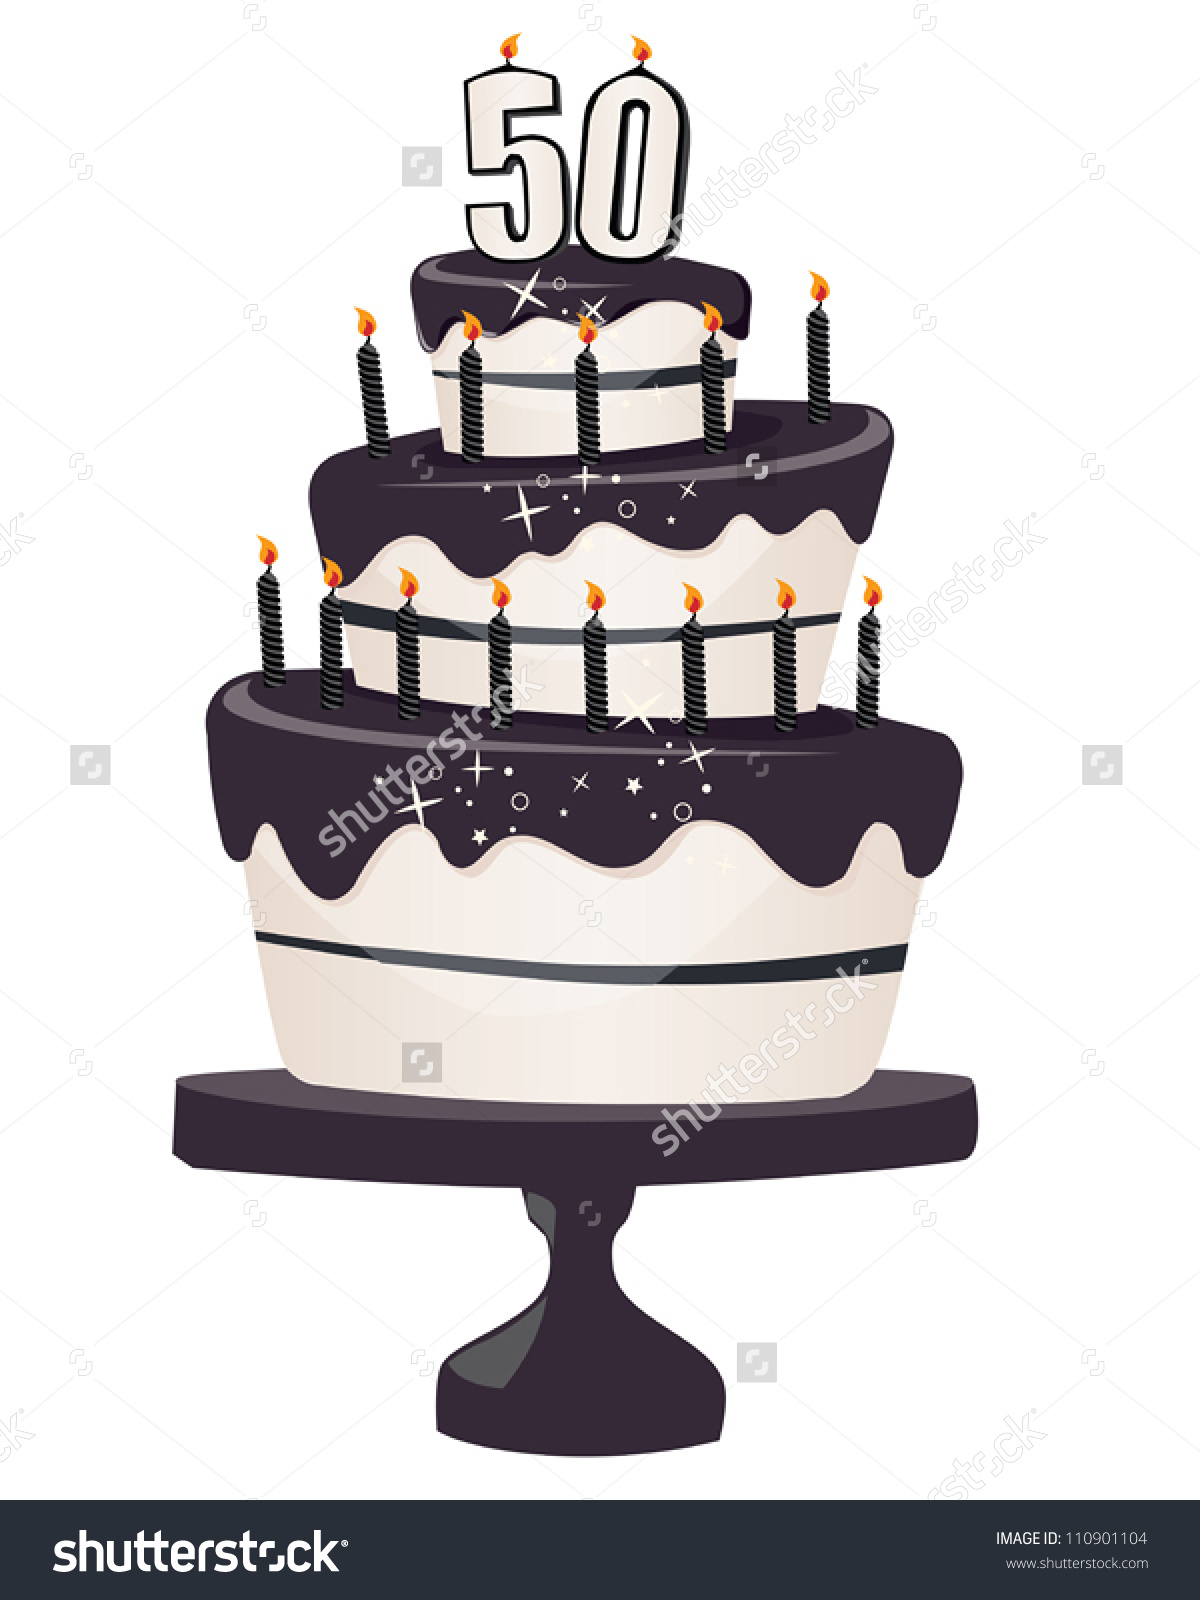 50th birthday cake clipart image transparent stock 50th birthday cake clipart - ClipartFest image transparent stock